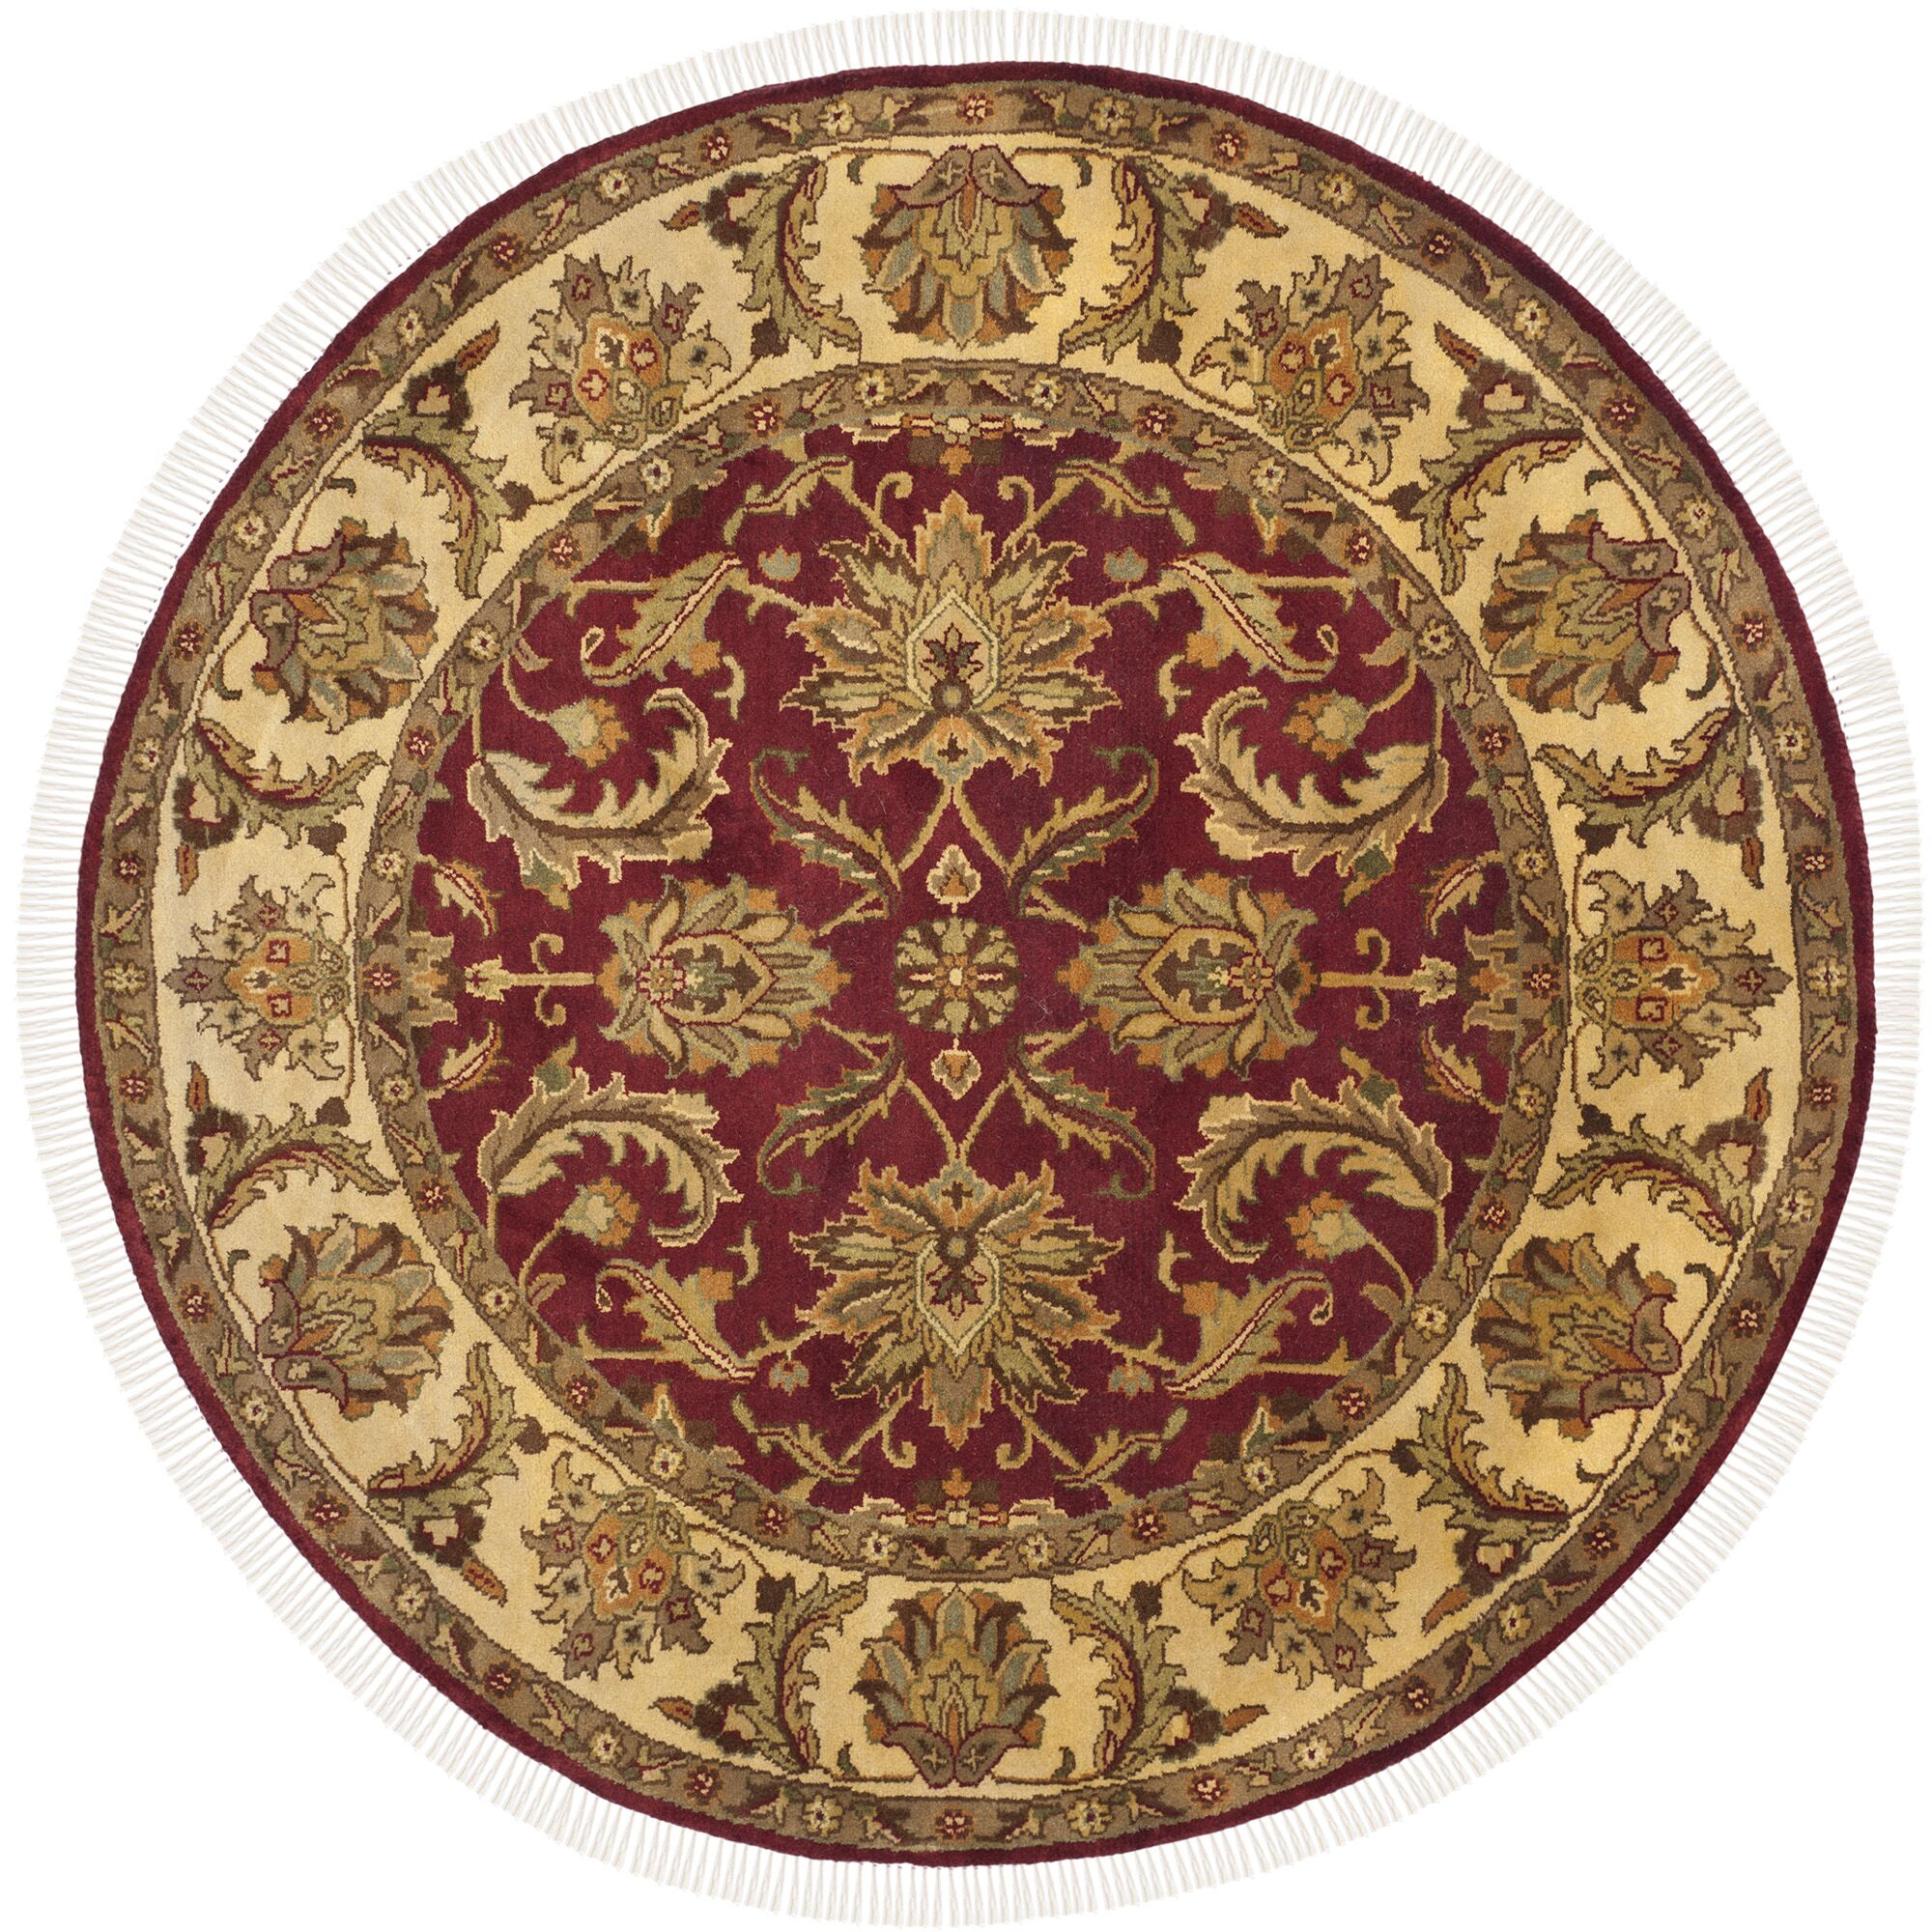 Hindsboro Tufted Wool Red/Gold Area Rug Rug Size: Round 6'